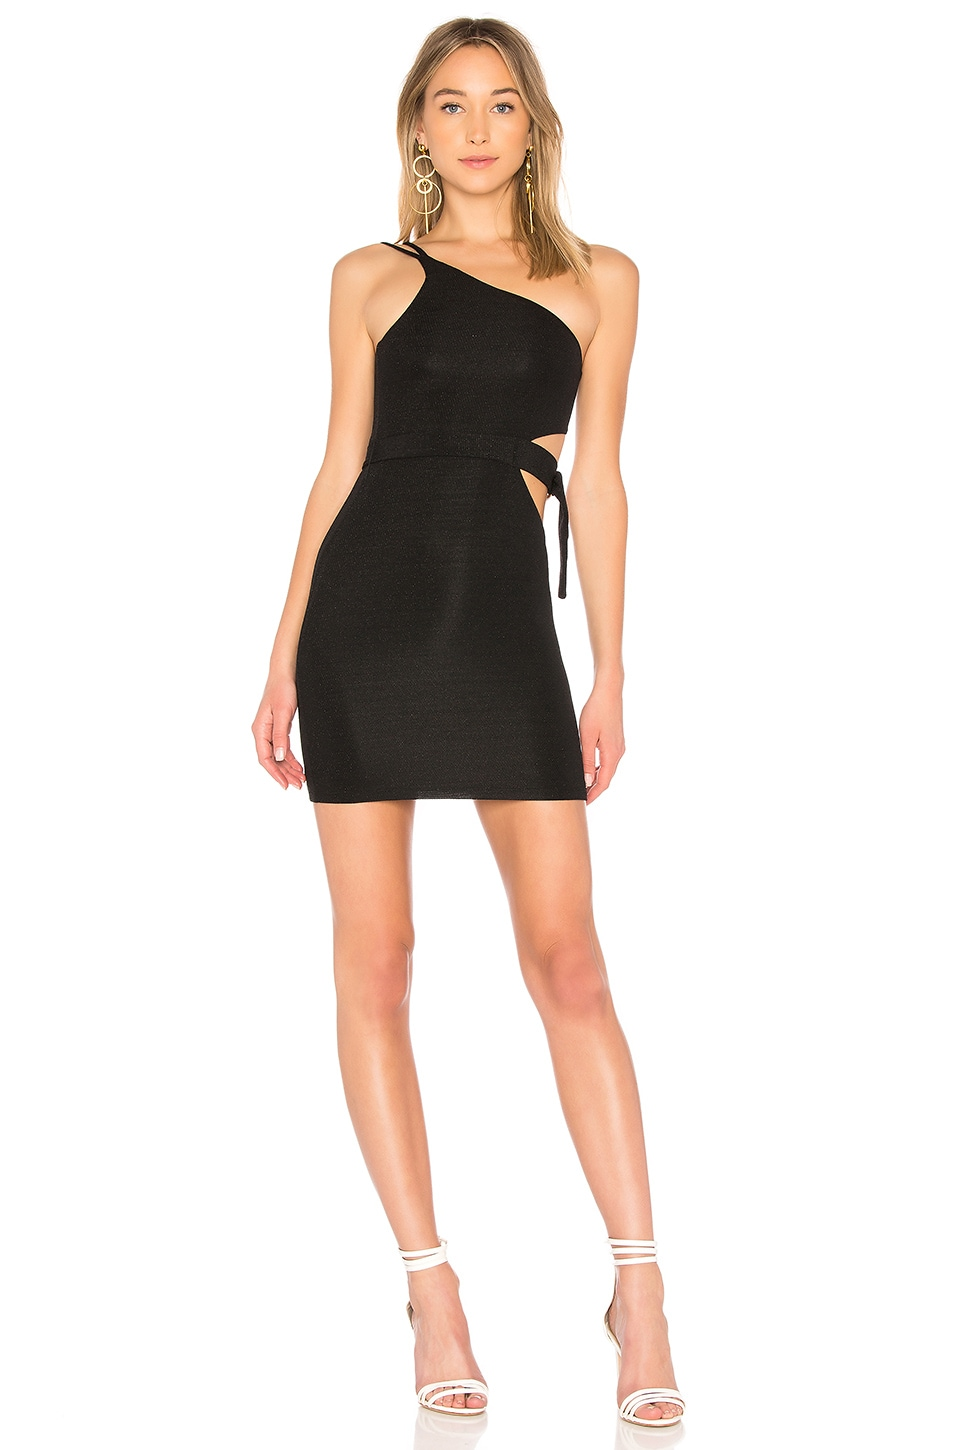 h:ours Cybele Dress in Black